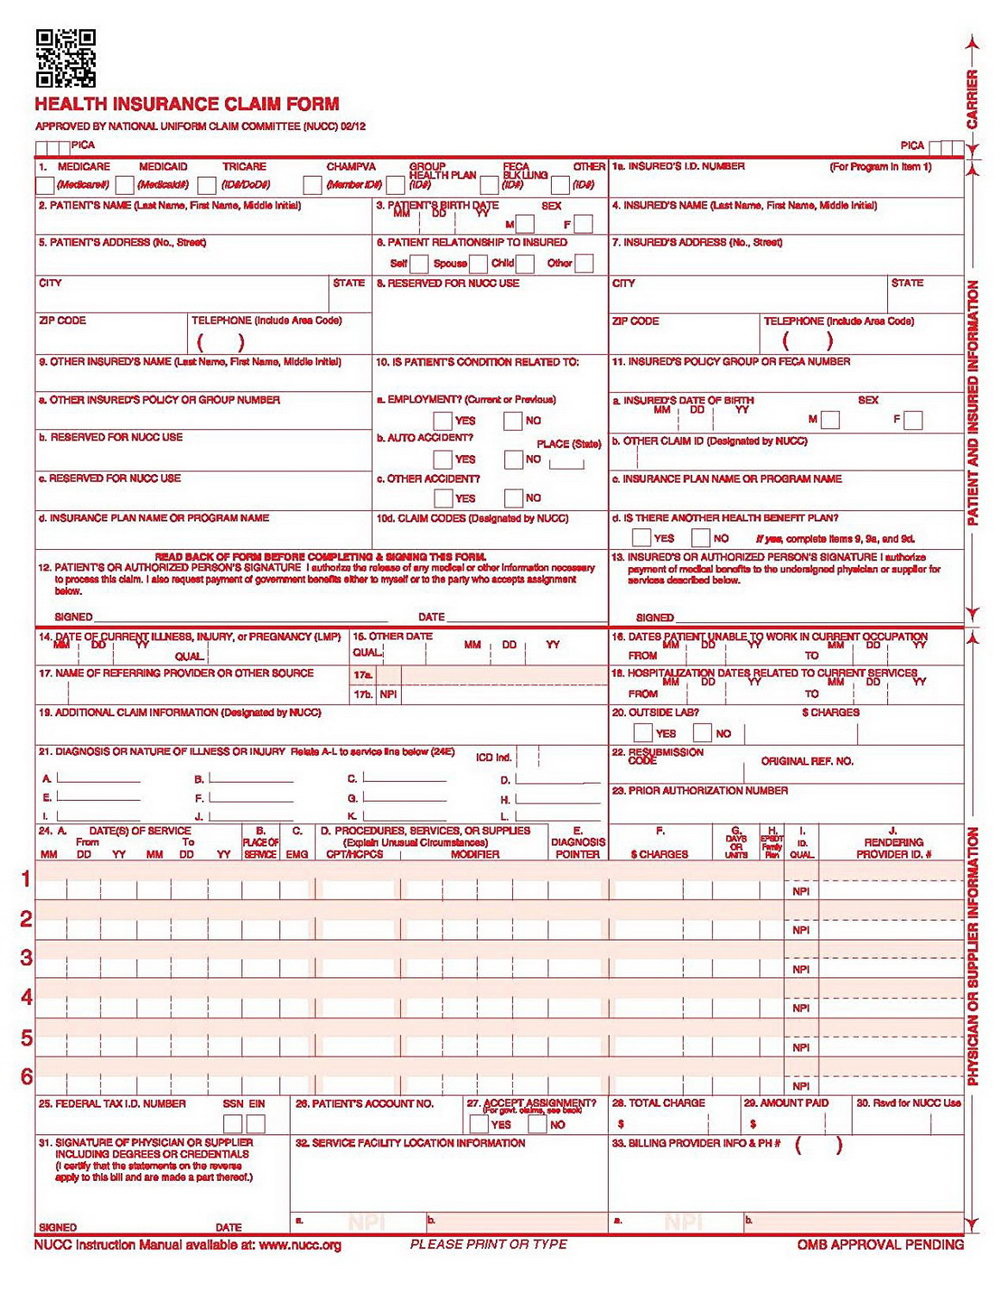 Sample Of 1500 Health Insurance Claim Form